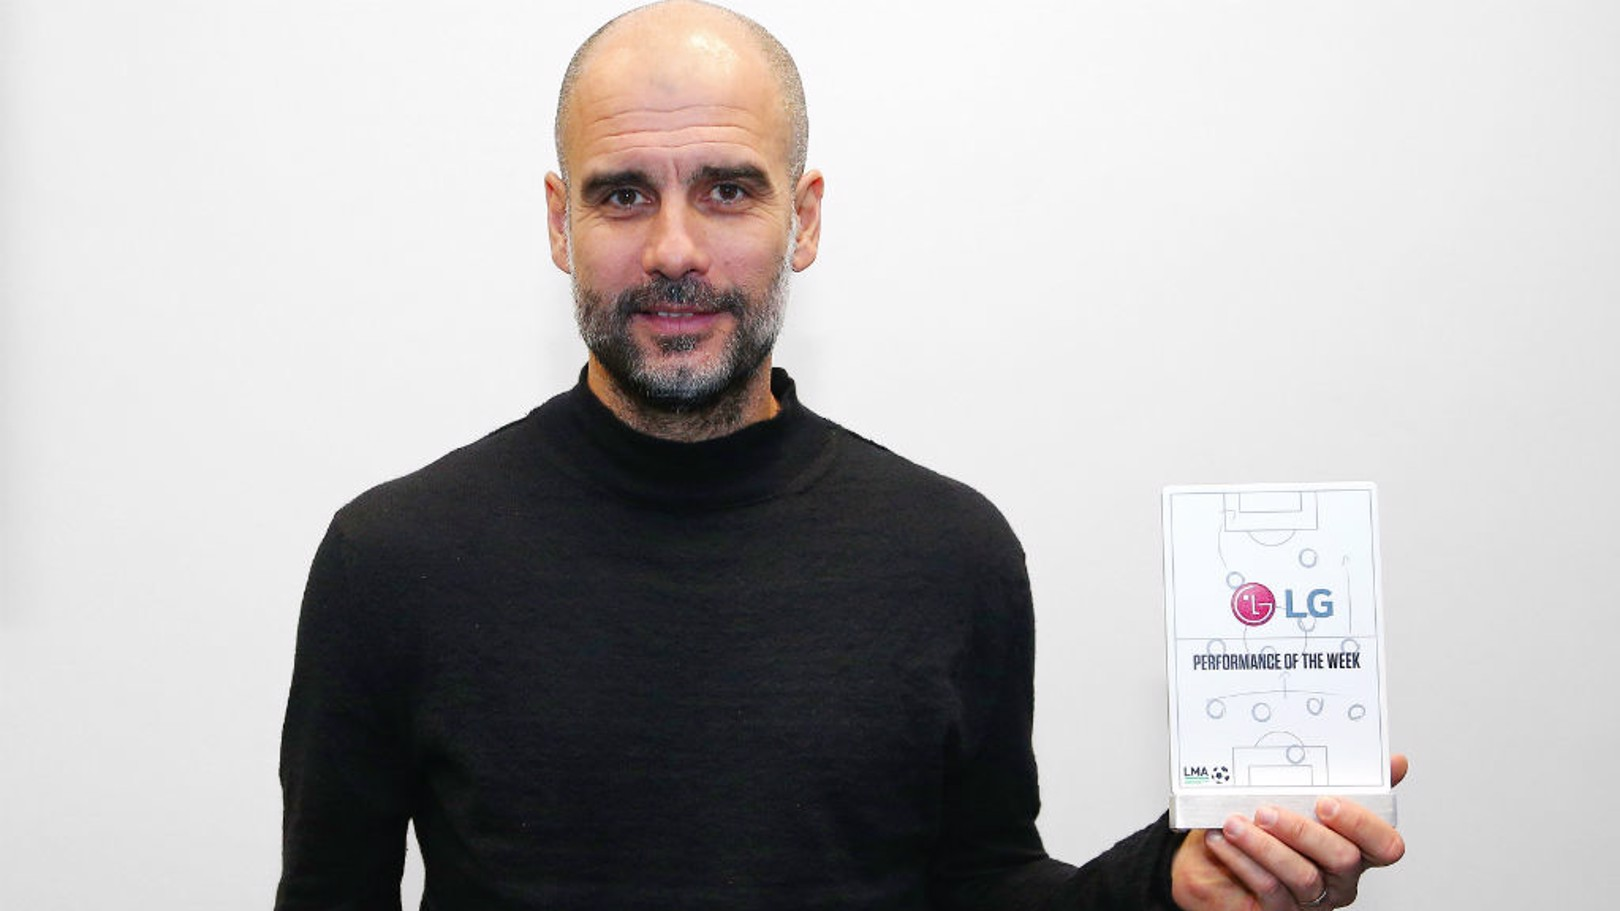 AWARD: Pep was on hand to receive the LG Performance of the Week trophy